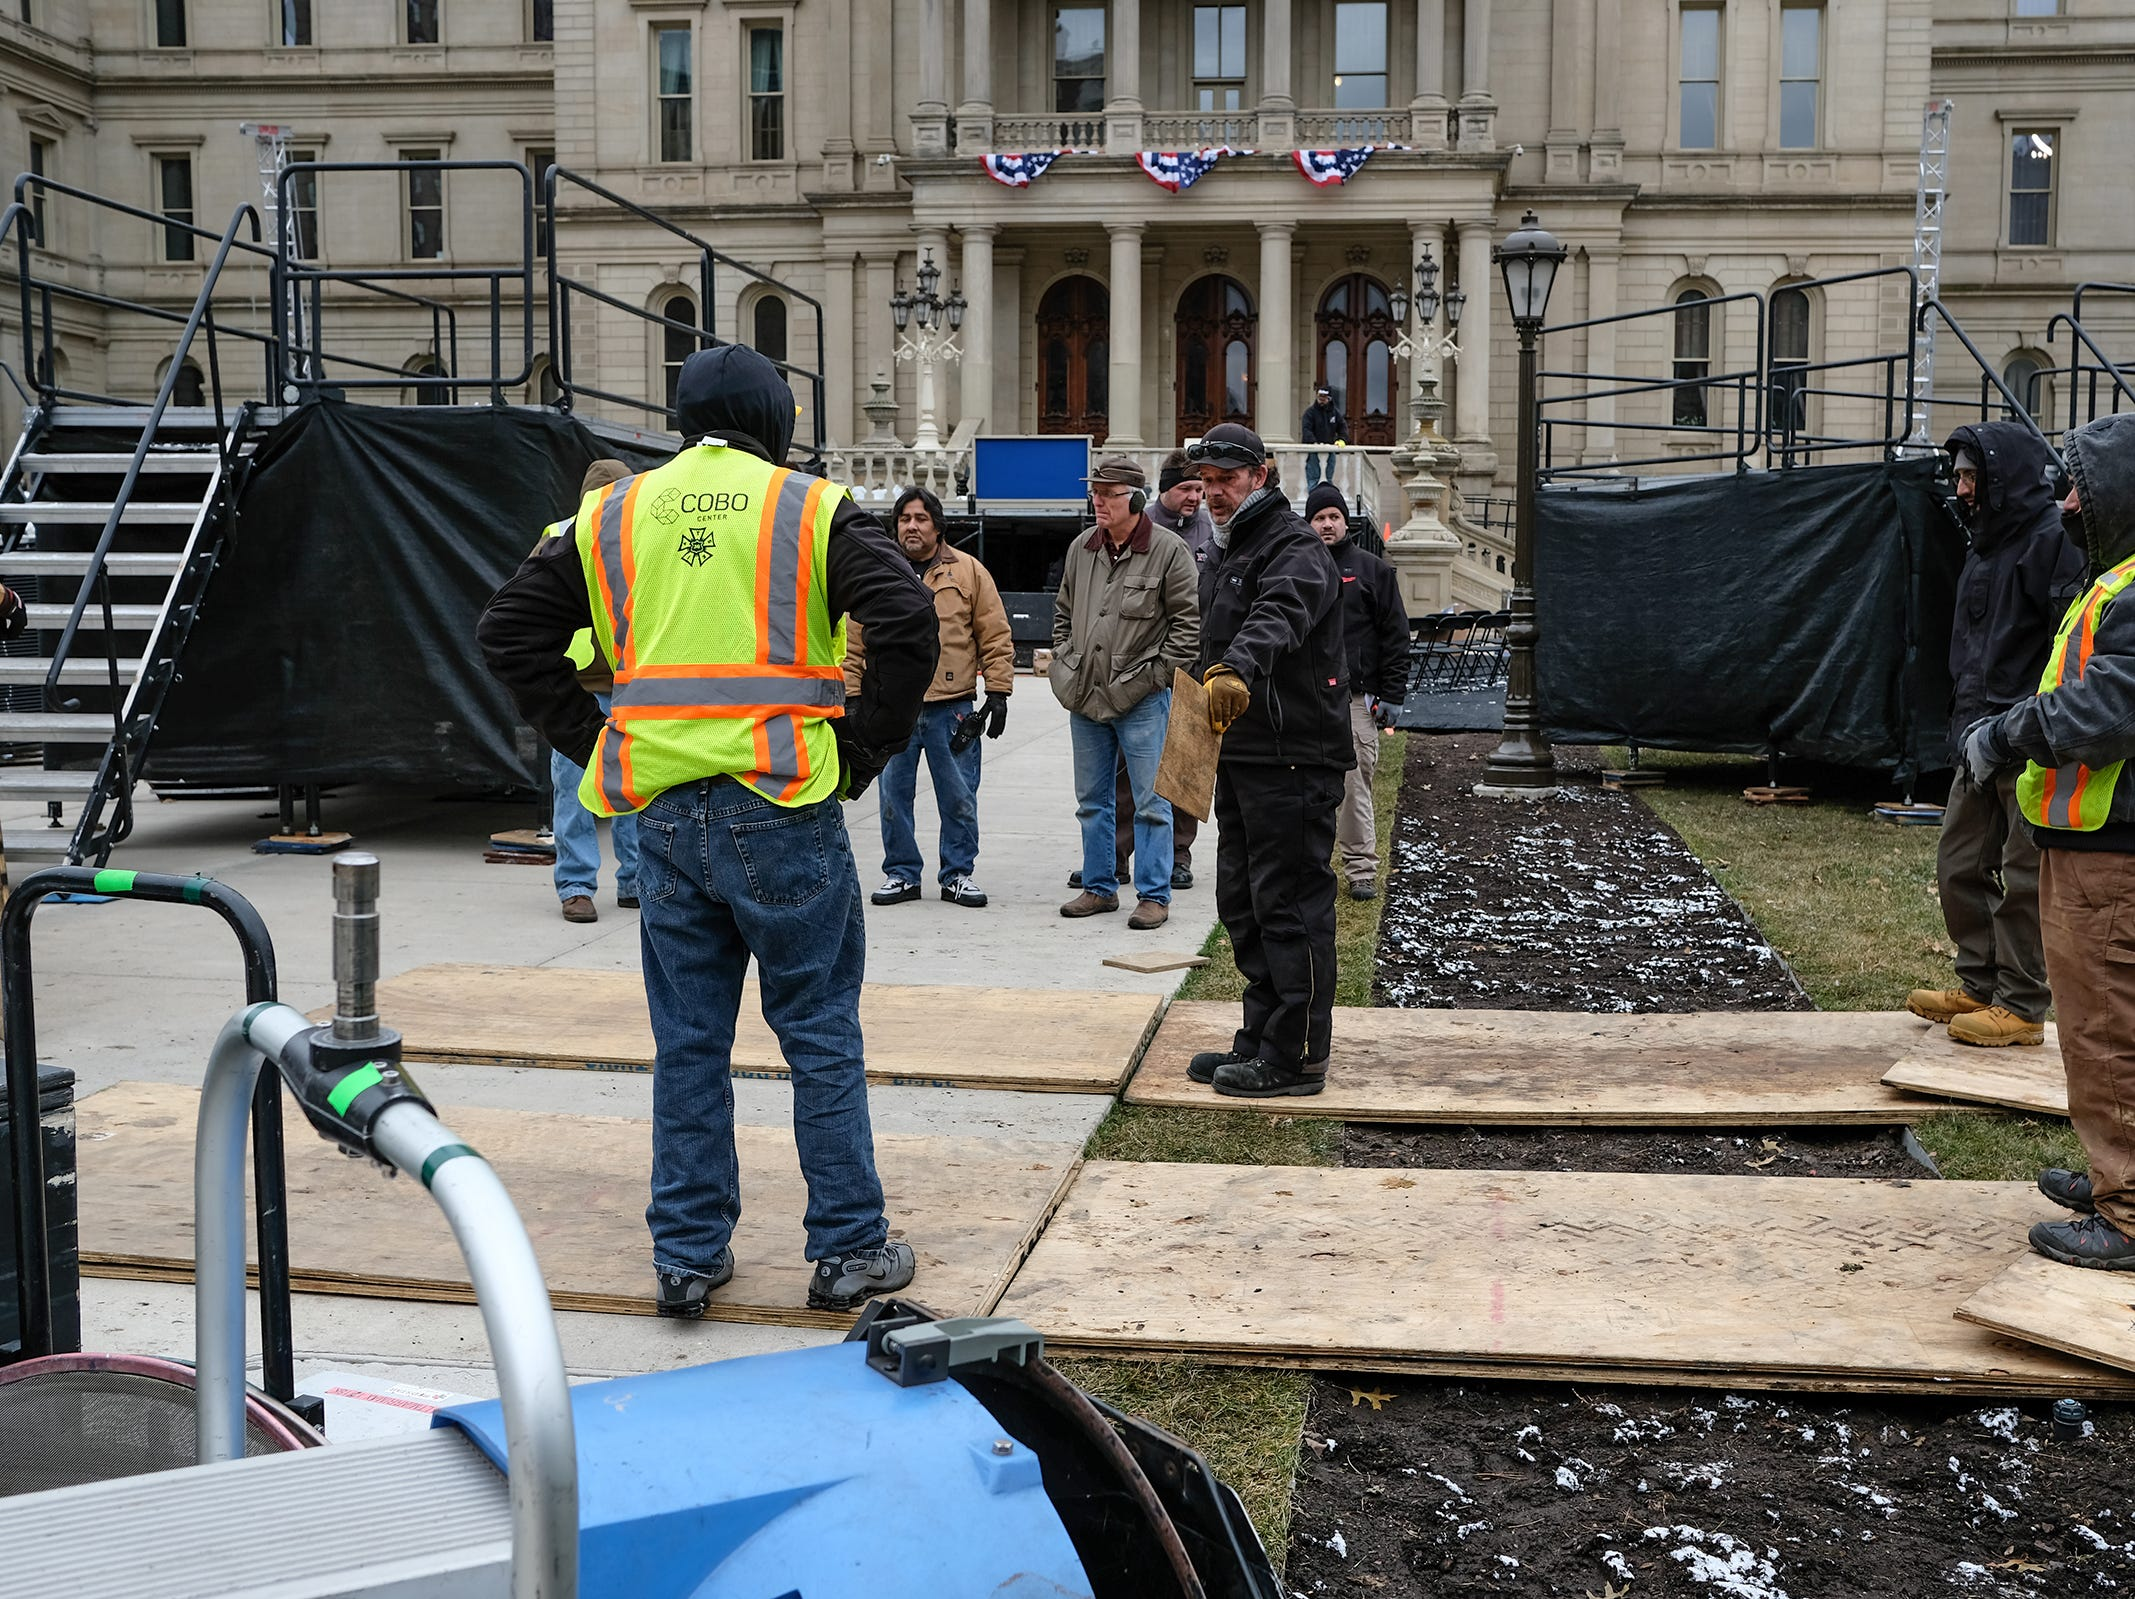 Workers from PMI out of Romulus, continue working at the state Capitol Saturday, Dec. 29, 2018 preparing for the Governor's inauguration on January 1st.